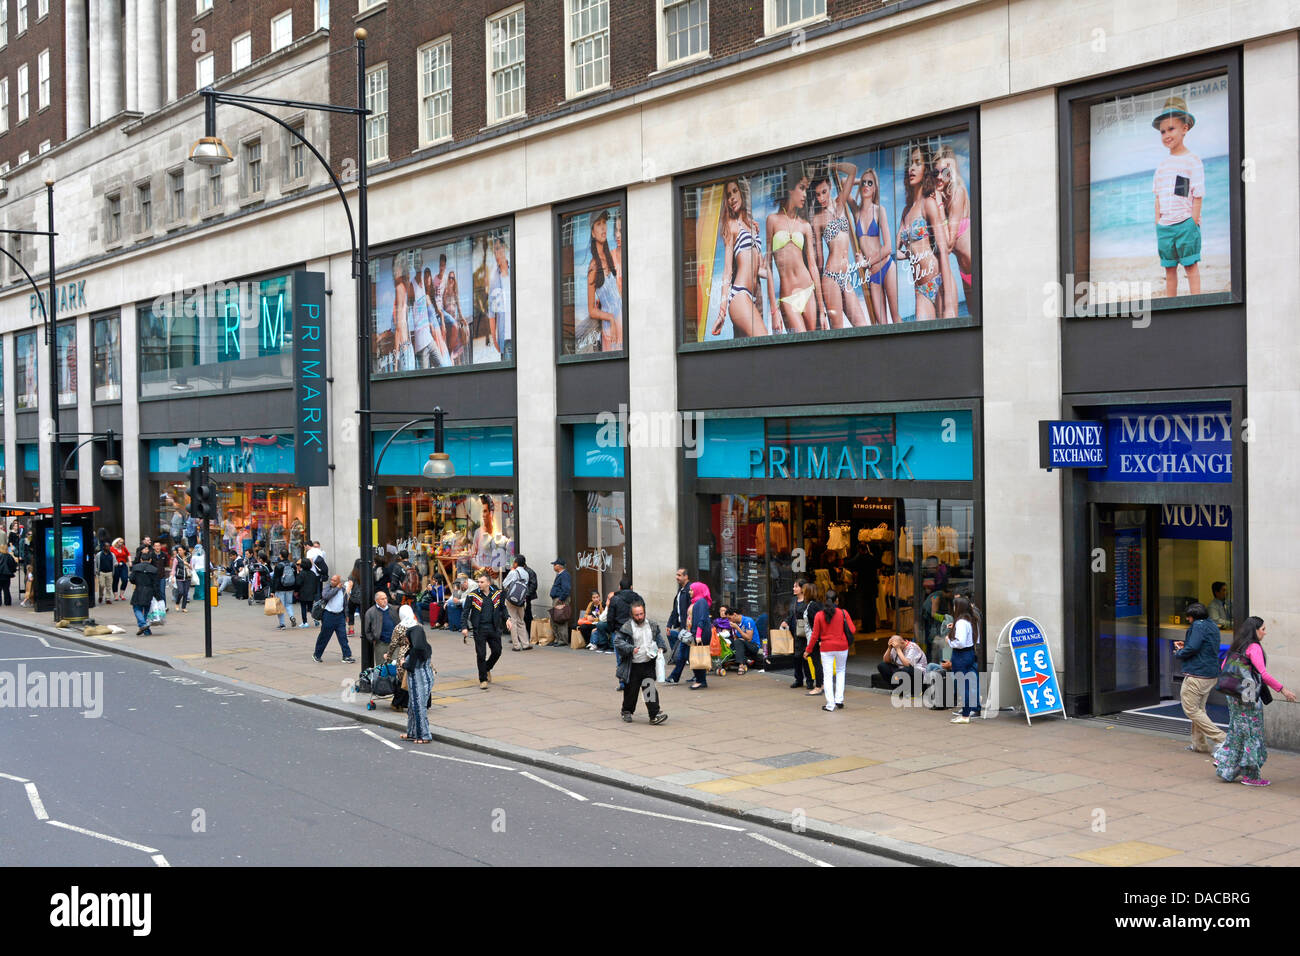 Clothing stores in london